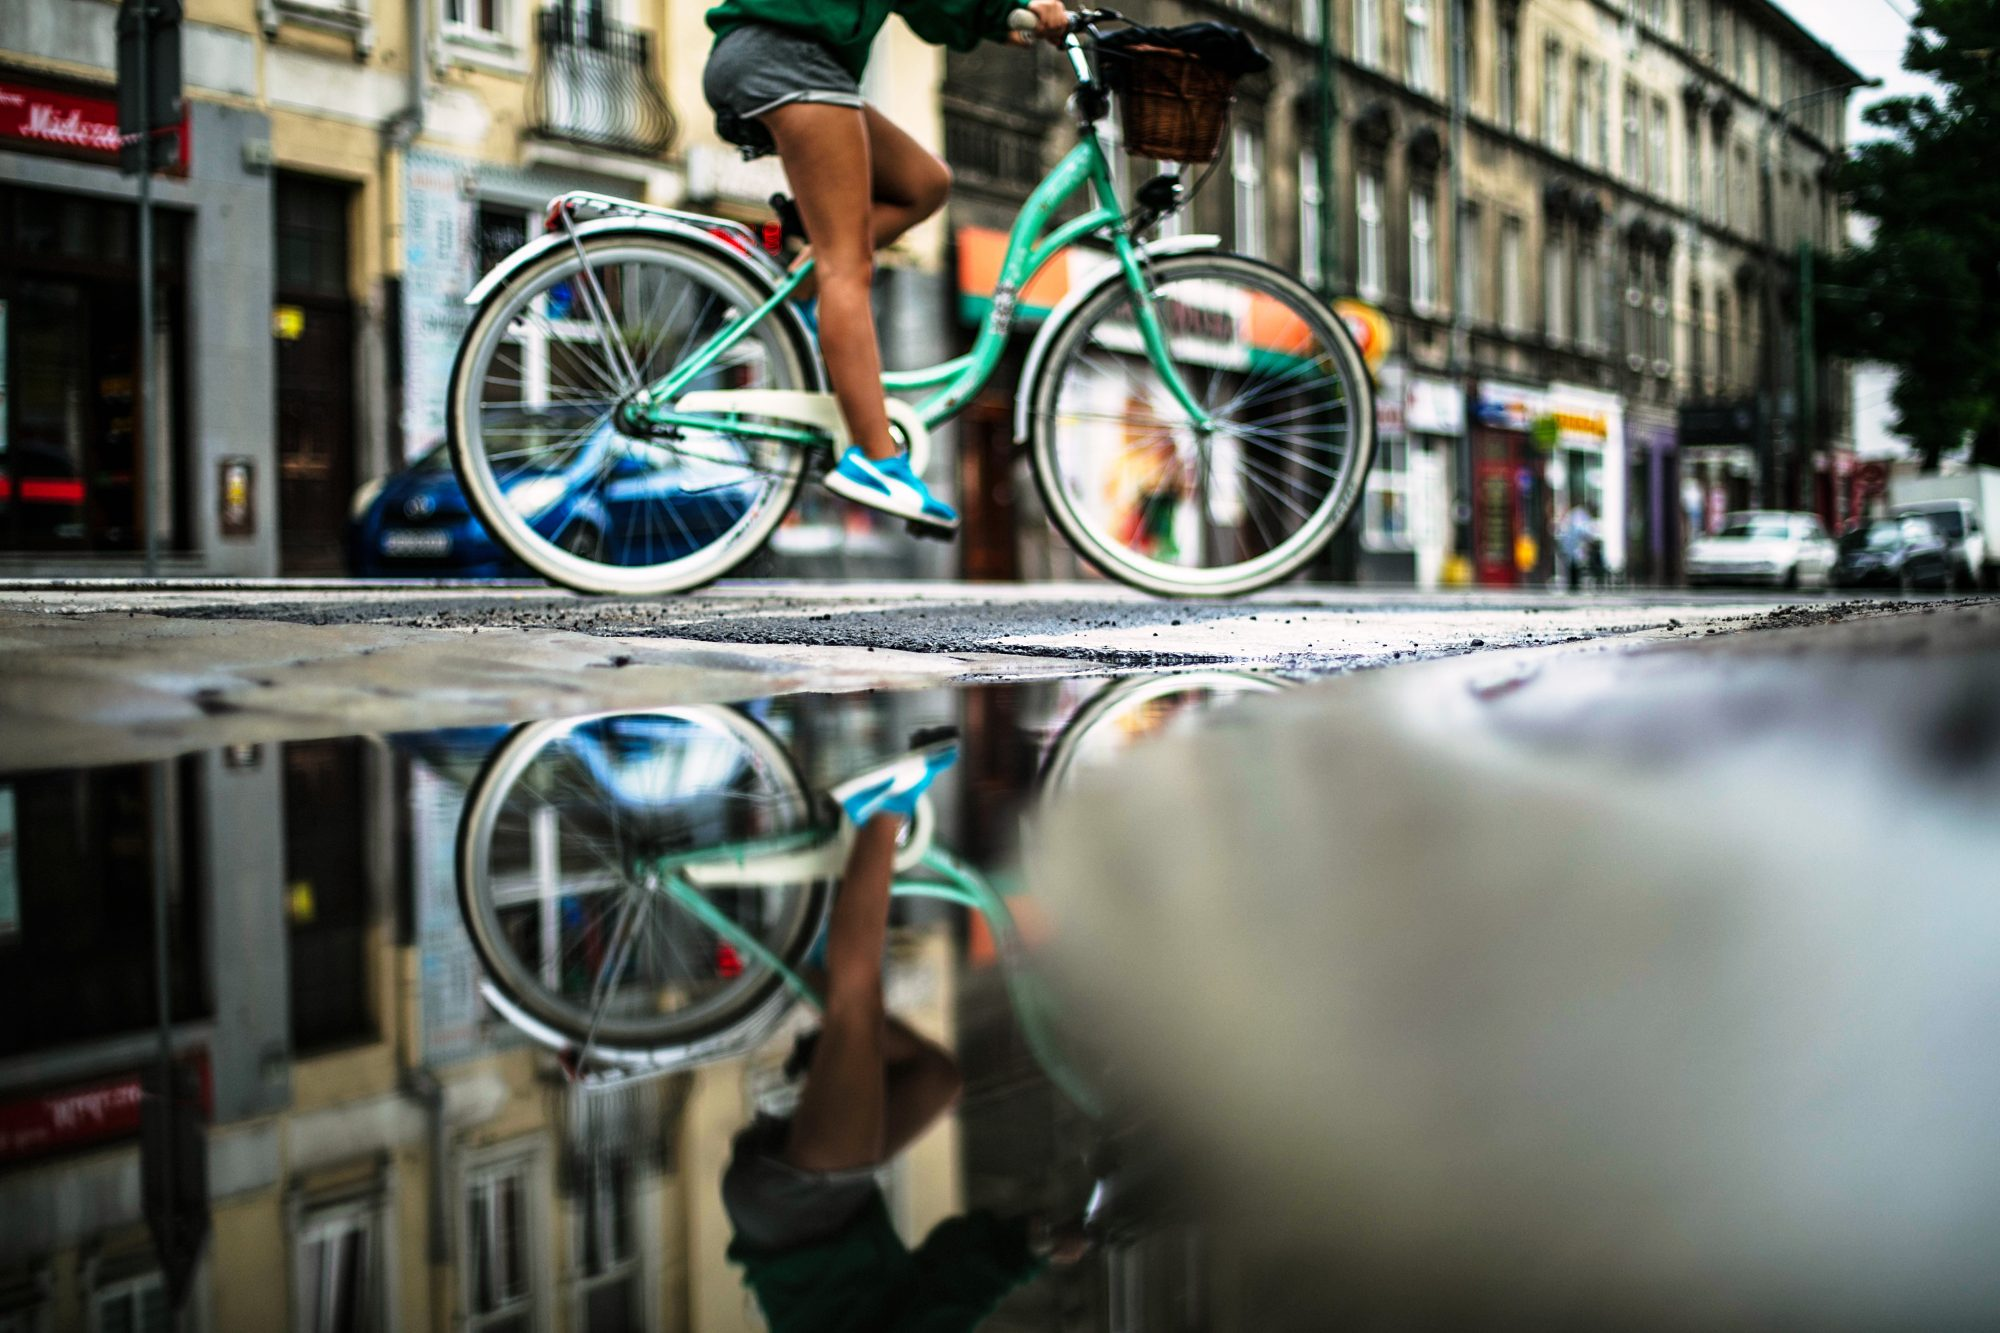 exercise-counts-bicycle-commute